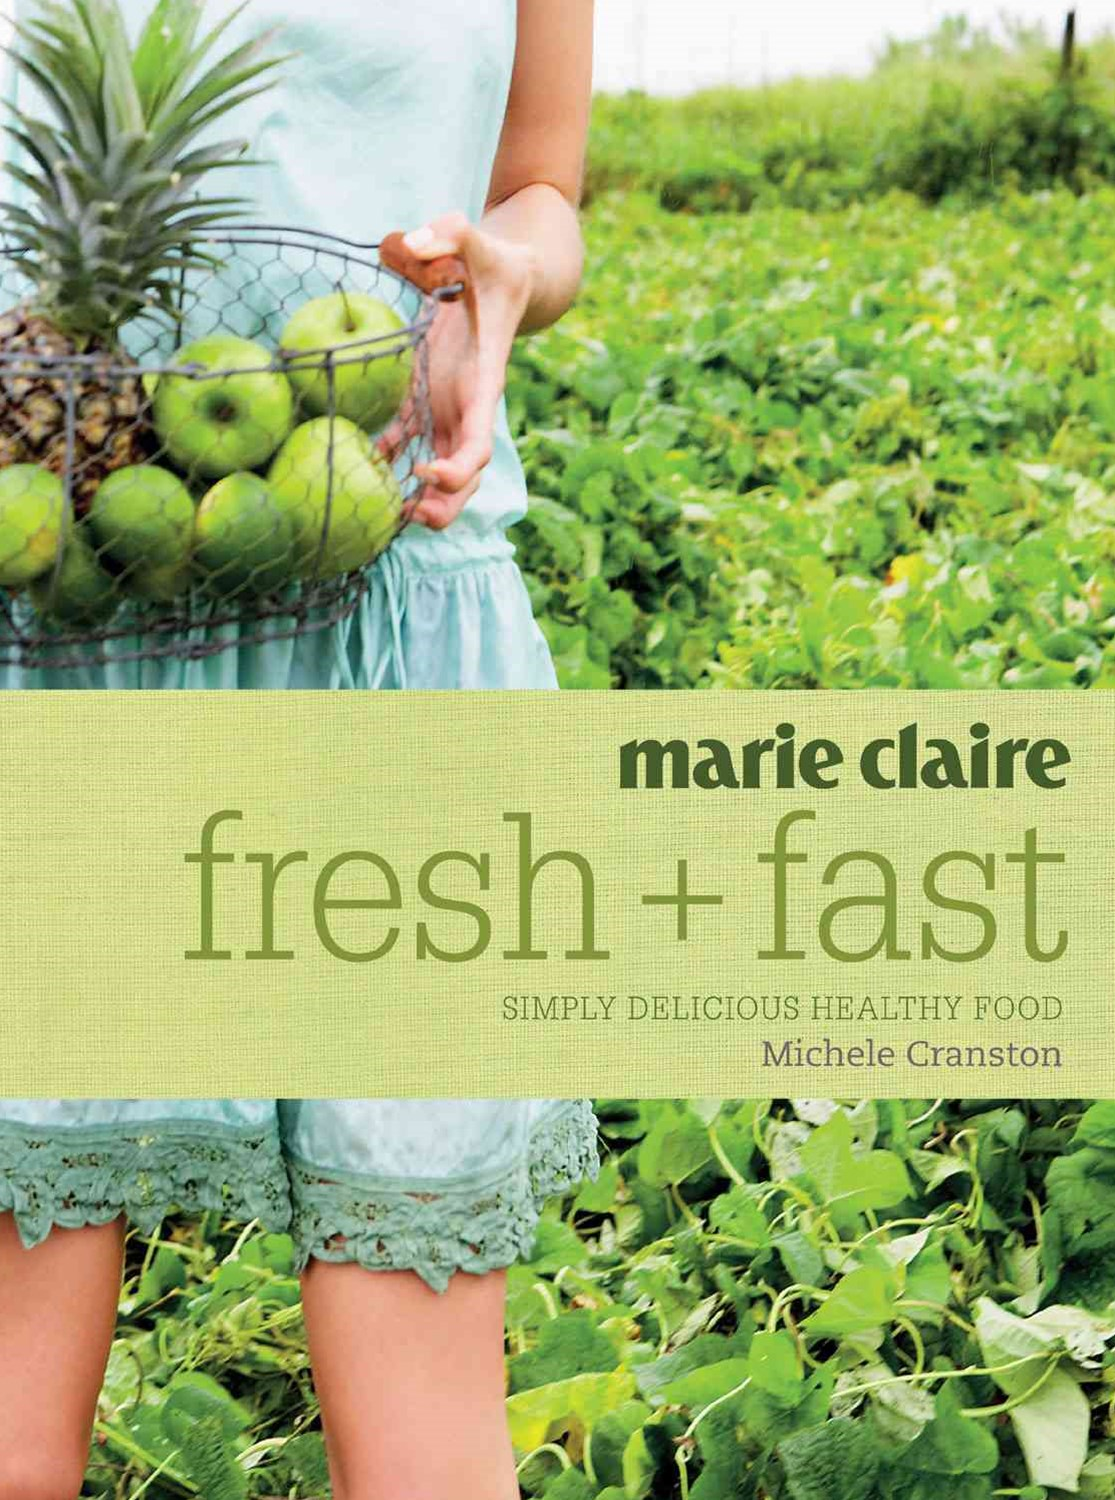 marie claire Fresh + Fast